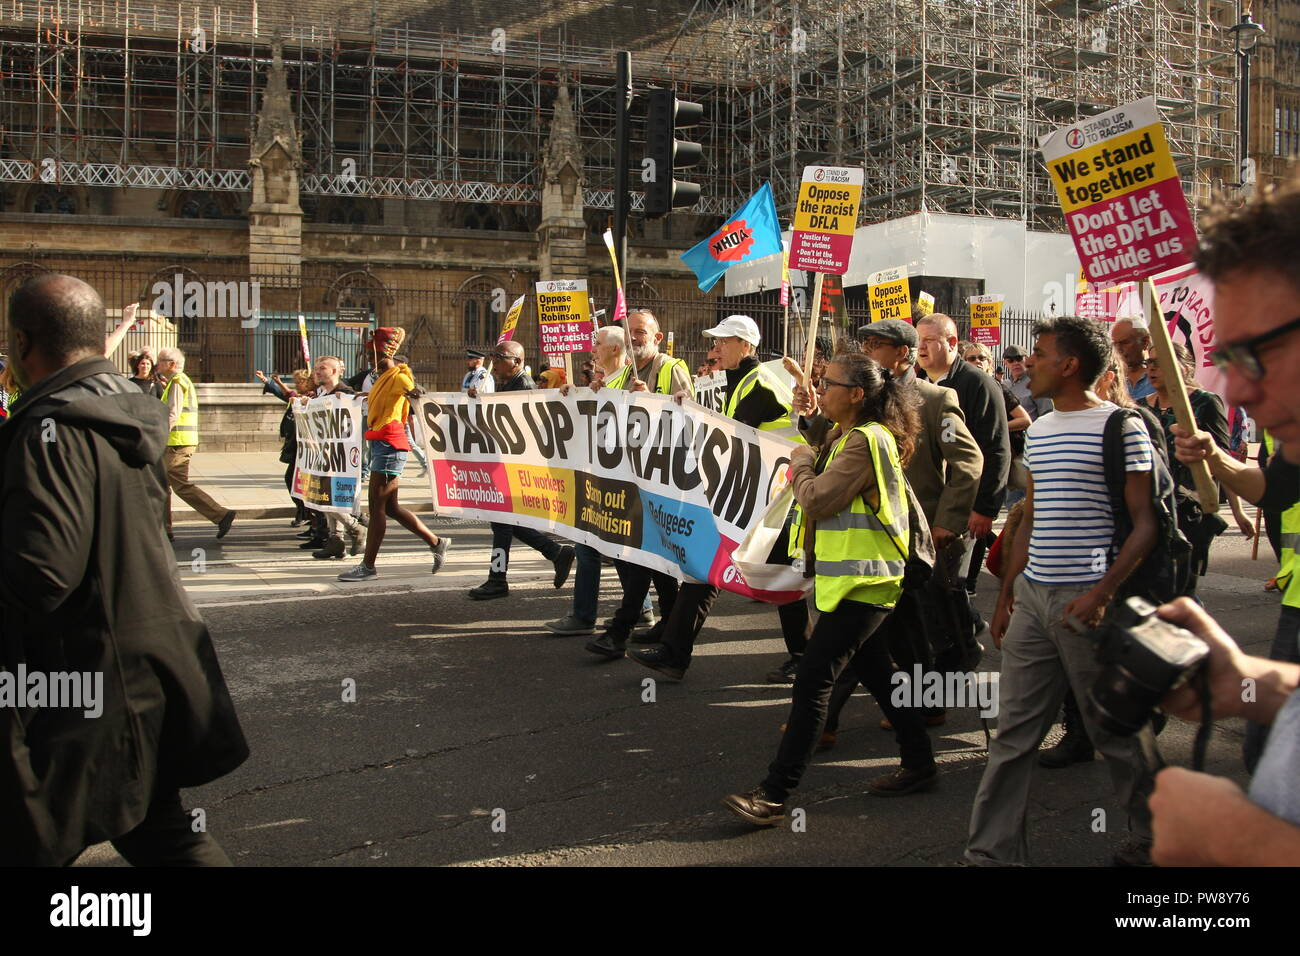 London, UK. 13th October, 2018. A counter protest organised by campaign group Stand Up To Racism held a march and rally in Whitehall. The purpose of the protest was to prevent the far right group DFLA (Democratic Football Lads Alliance) from marching through Whitehall and past Parliament. Roland Ravenhill/Alamy Live News - Stock Image